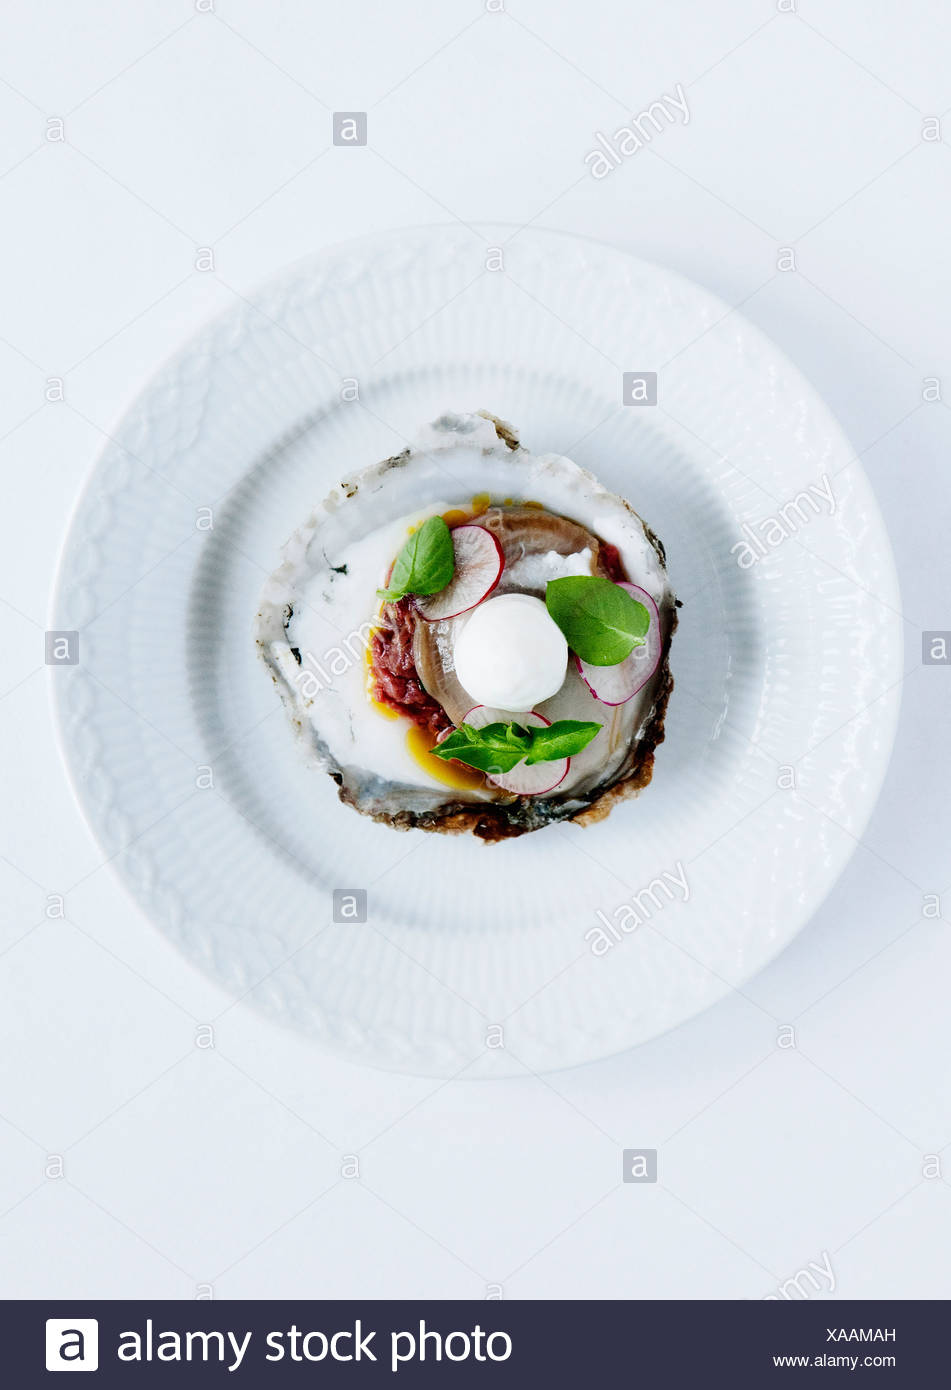 Plate of oysters with radish and herbs - Stock Image